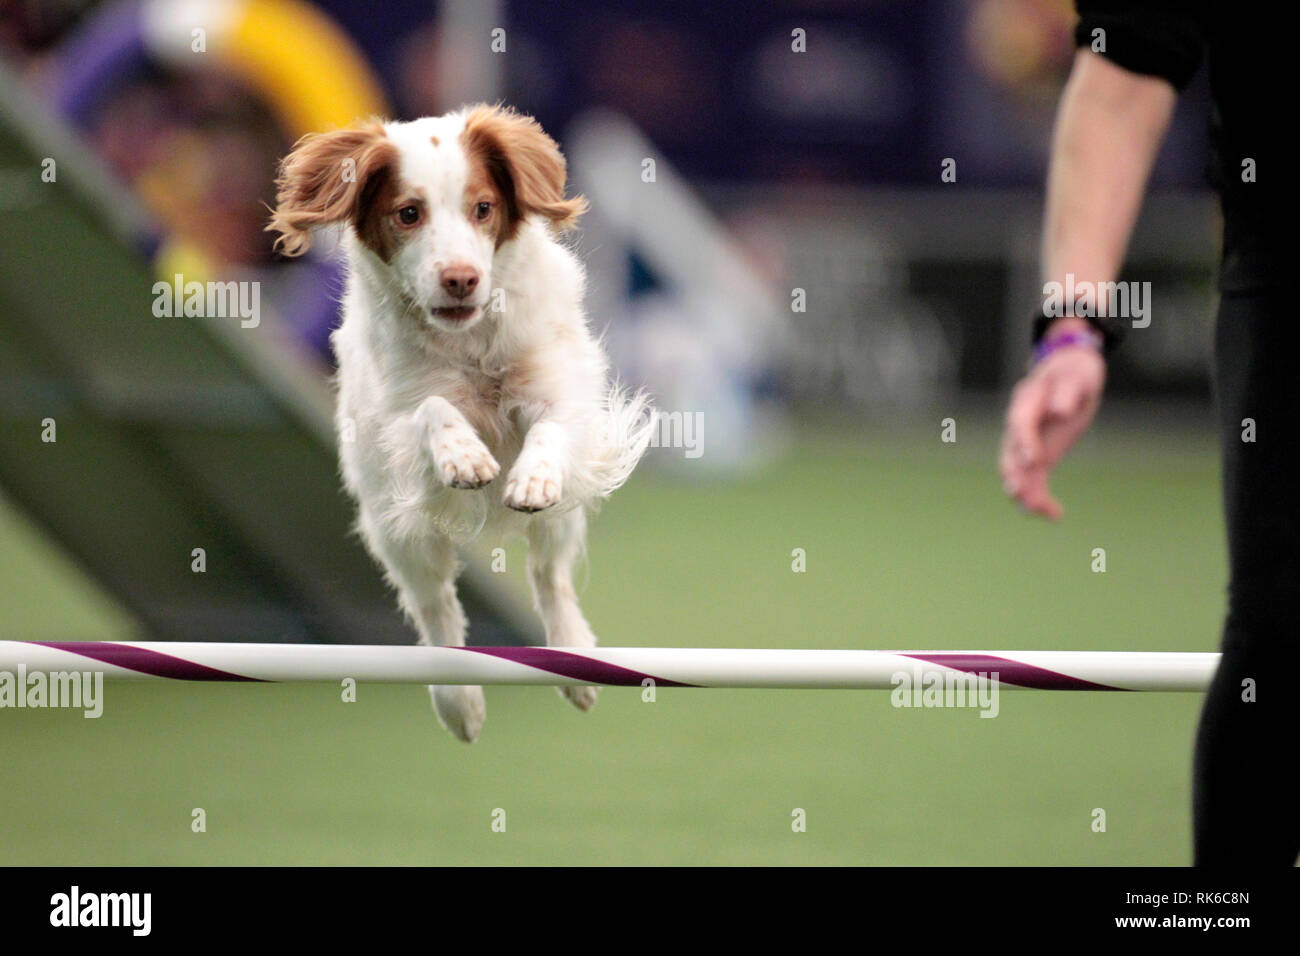 New York, USA. 09th Feb, 2019. Westminster Dog Show - Sadie, a Brittany, competing in the preliminaries of the Westminster Kennel Club's Master's Agility Championship. Credit: Adam Stoltman/Alamy Live News Stock Photo